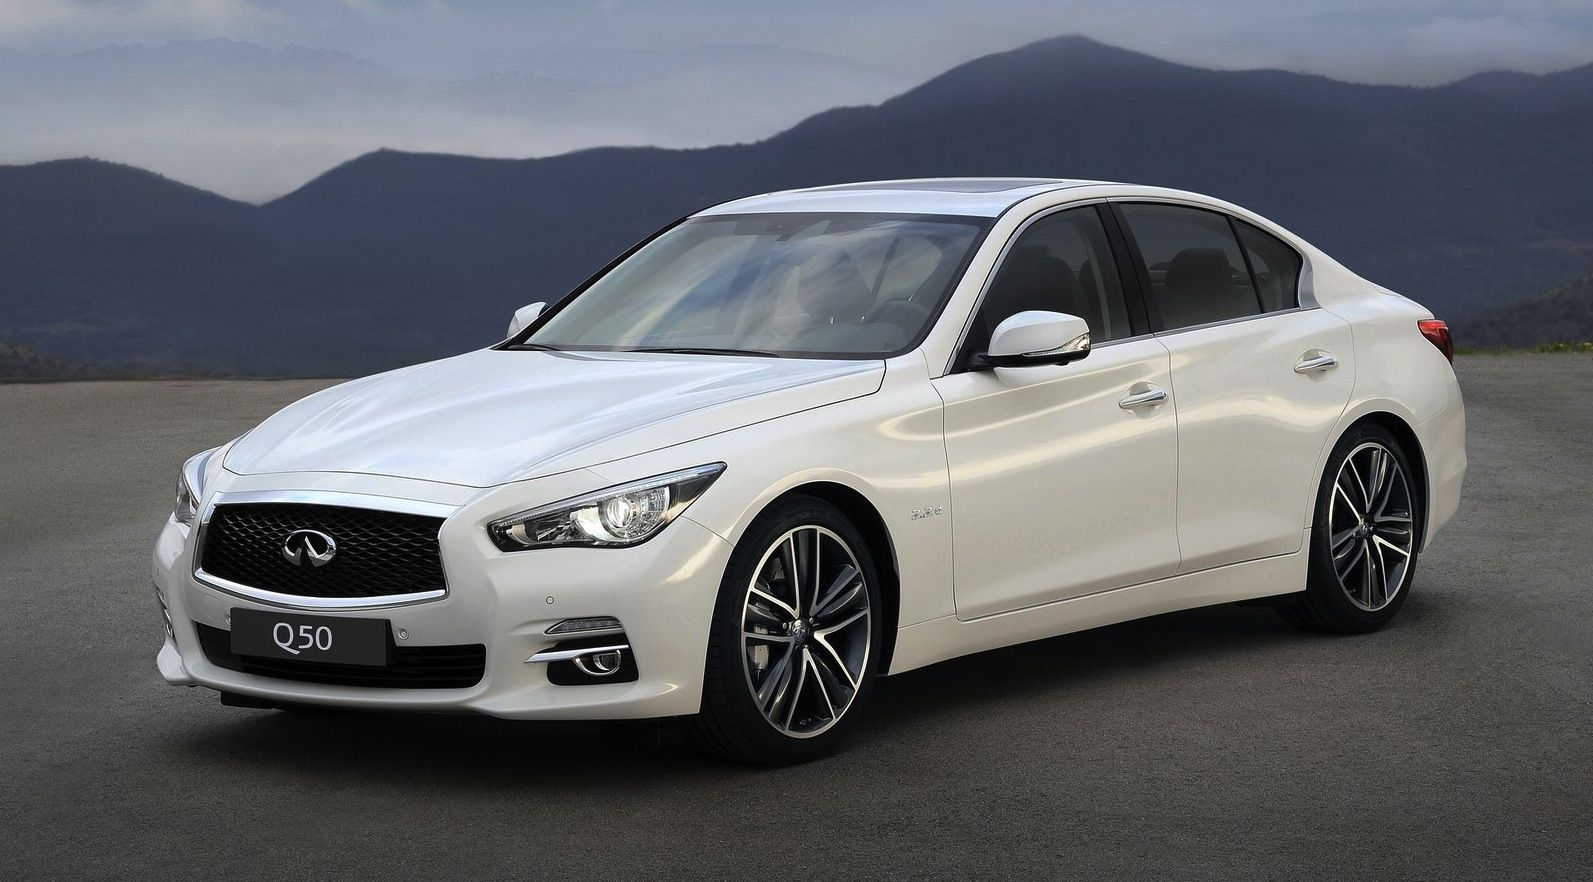 2015 Infiniti Q50 HD Wallpaper